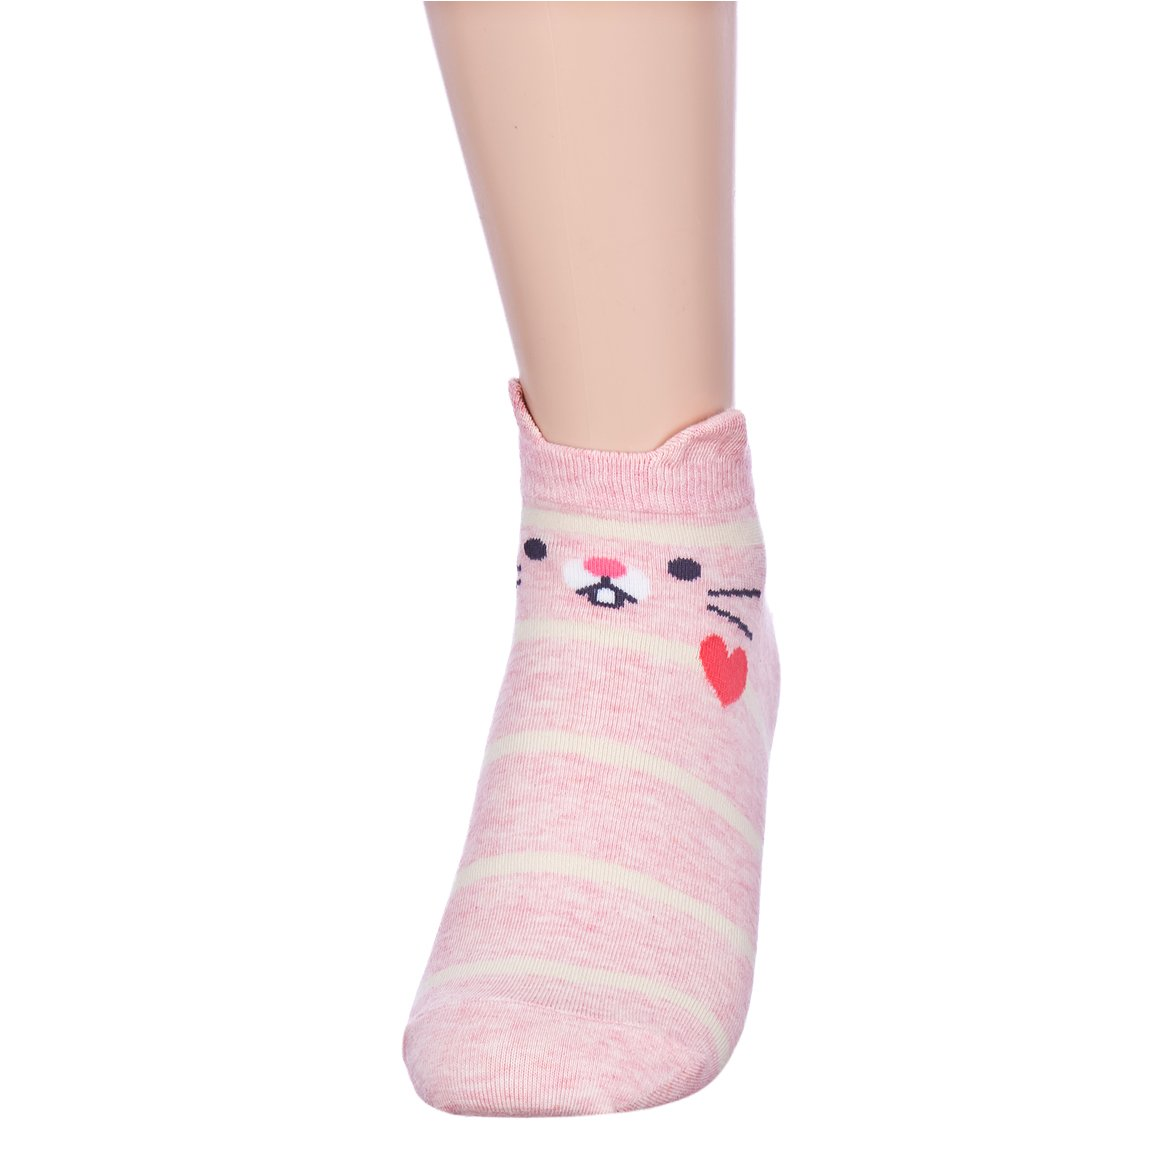 Fall in Love Animal Charater Casual Sneakers Socks (Onesize, 5 Pairs) by Dani's Choice (Image #4)